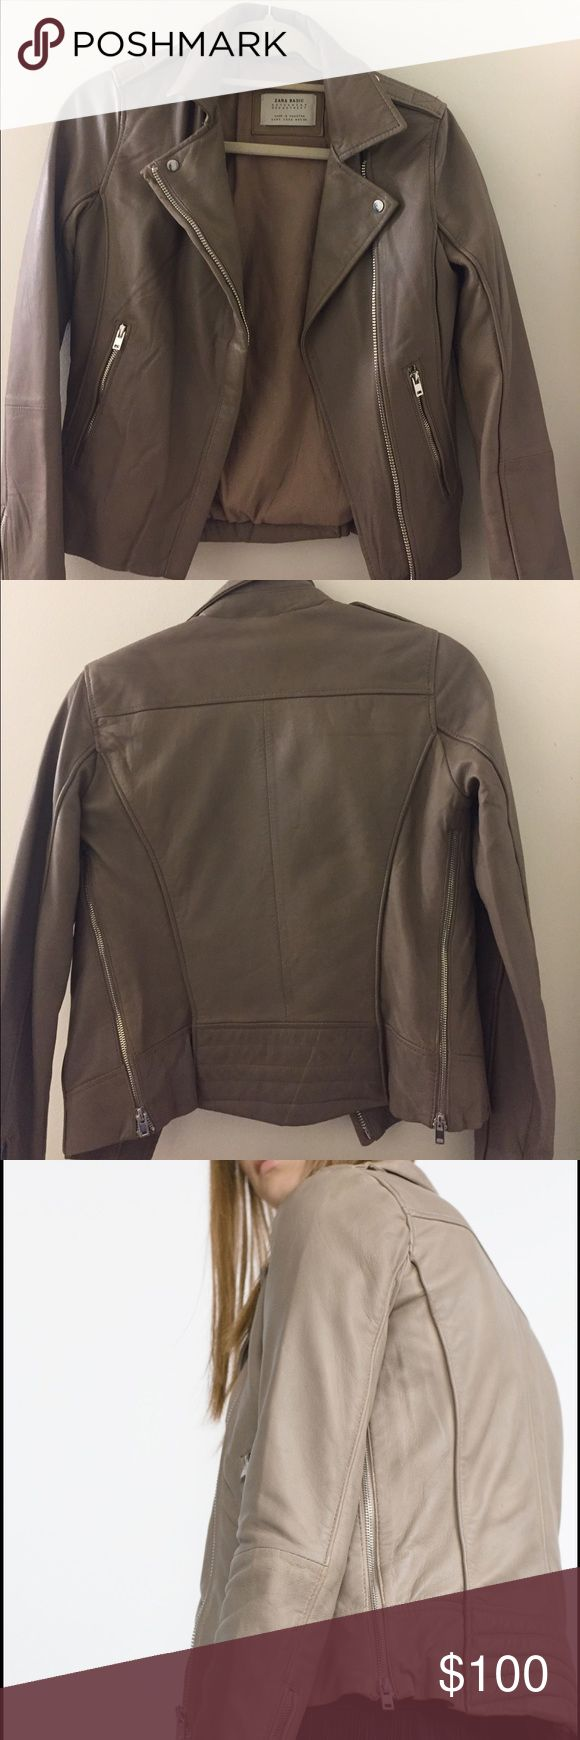 Zara taupe real leather jacket size small new Buttery soft taupe real leather jacket brand new never worn outside its been sitting in my closet! No rips or tears but slight amount of wear on sleeves. Dark beige/taupe, not tan. Zara Jackets & Coats